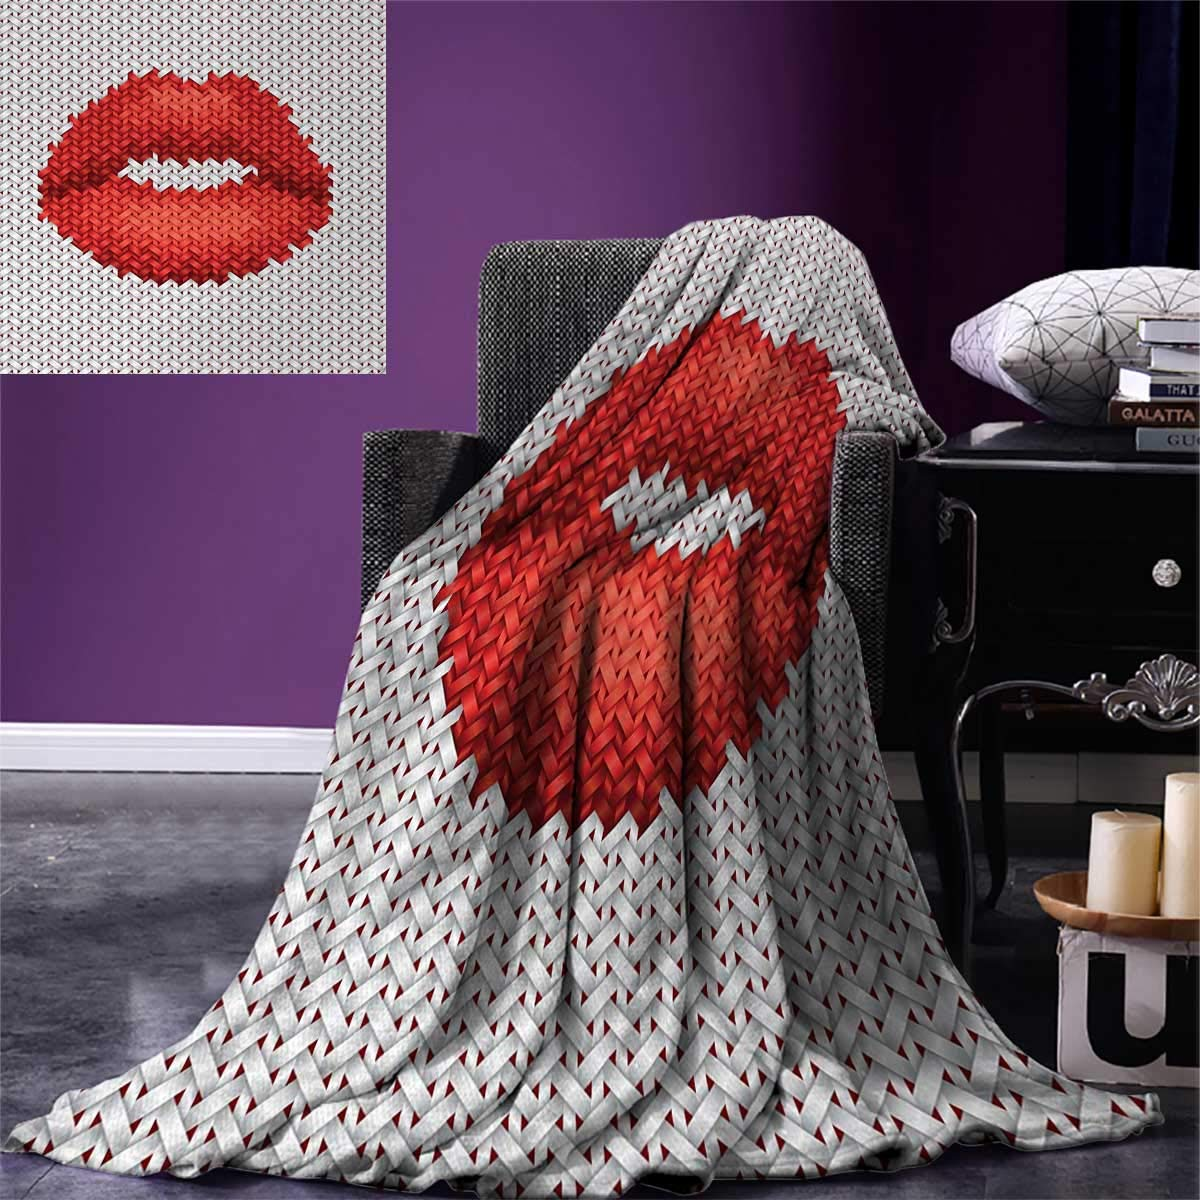 Teen Girls Digital Printing Blanket Lips Illustration Embroidery on Fabric Pattern Cosmetics Stylish Womanly Ornament Summer Quilt Comforter 80''x60'' Red Grey